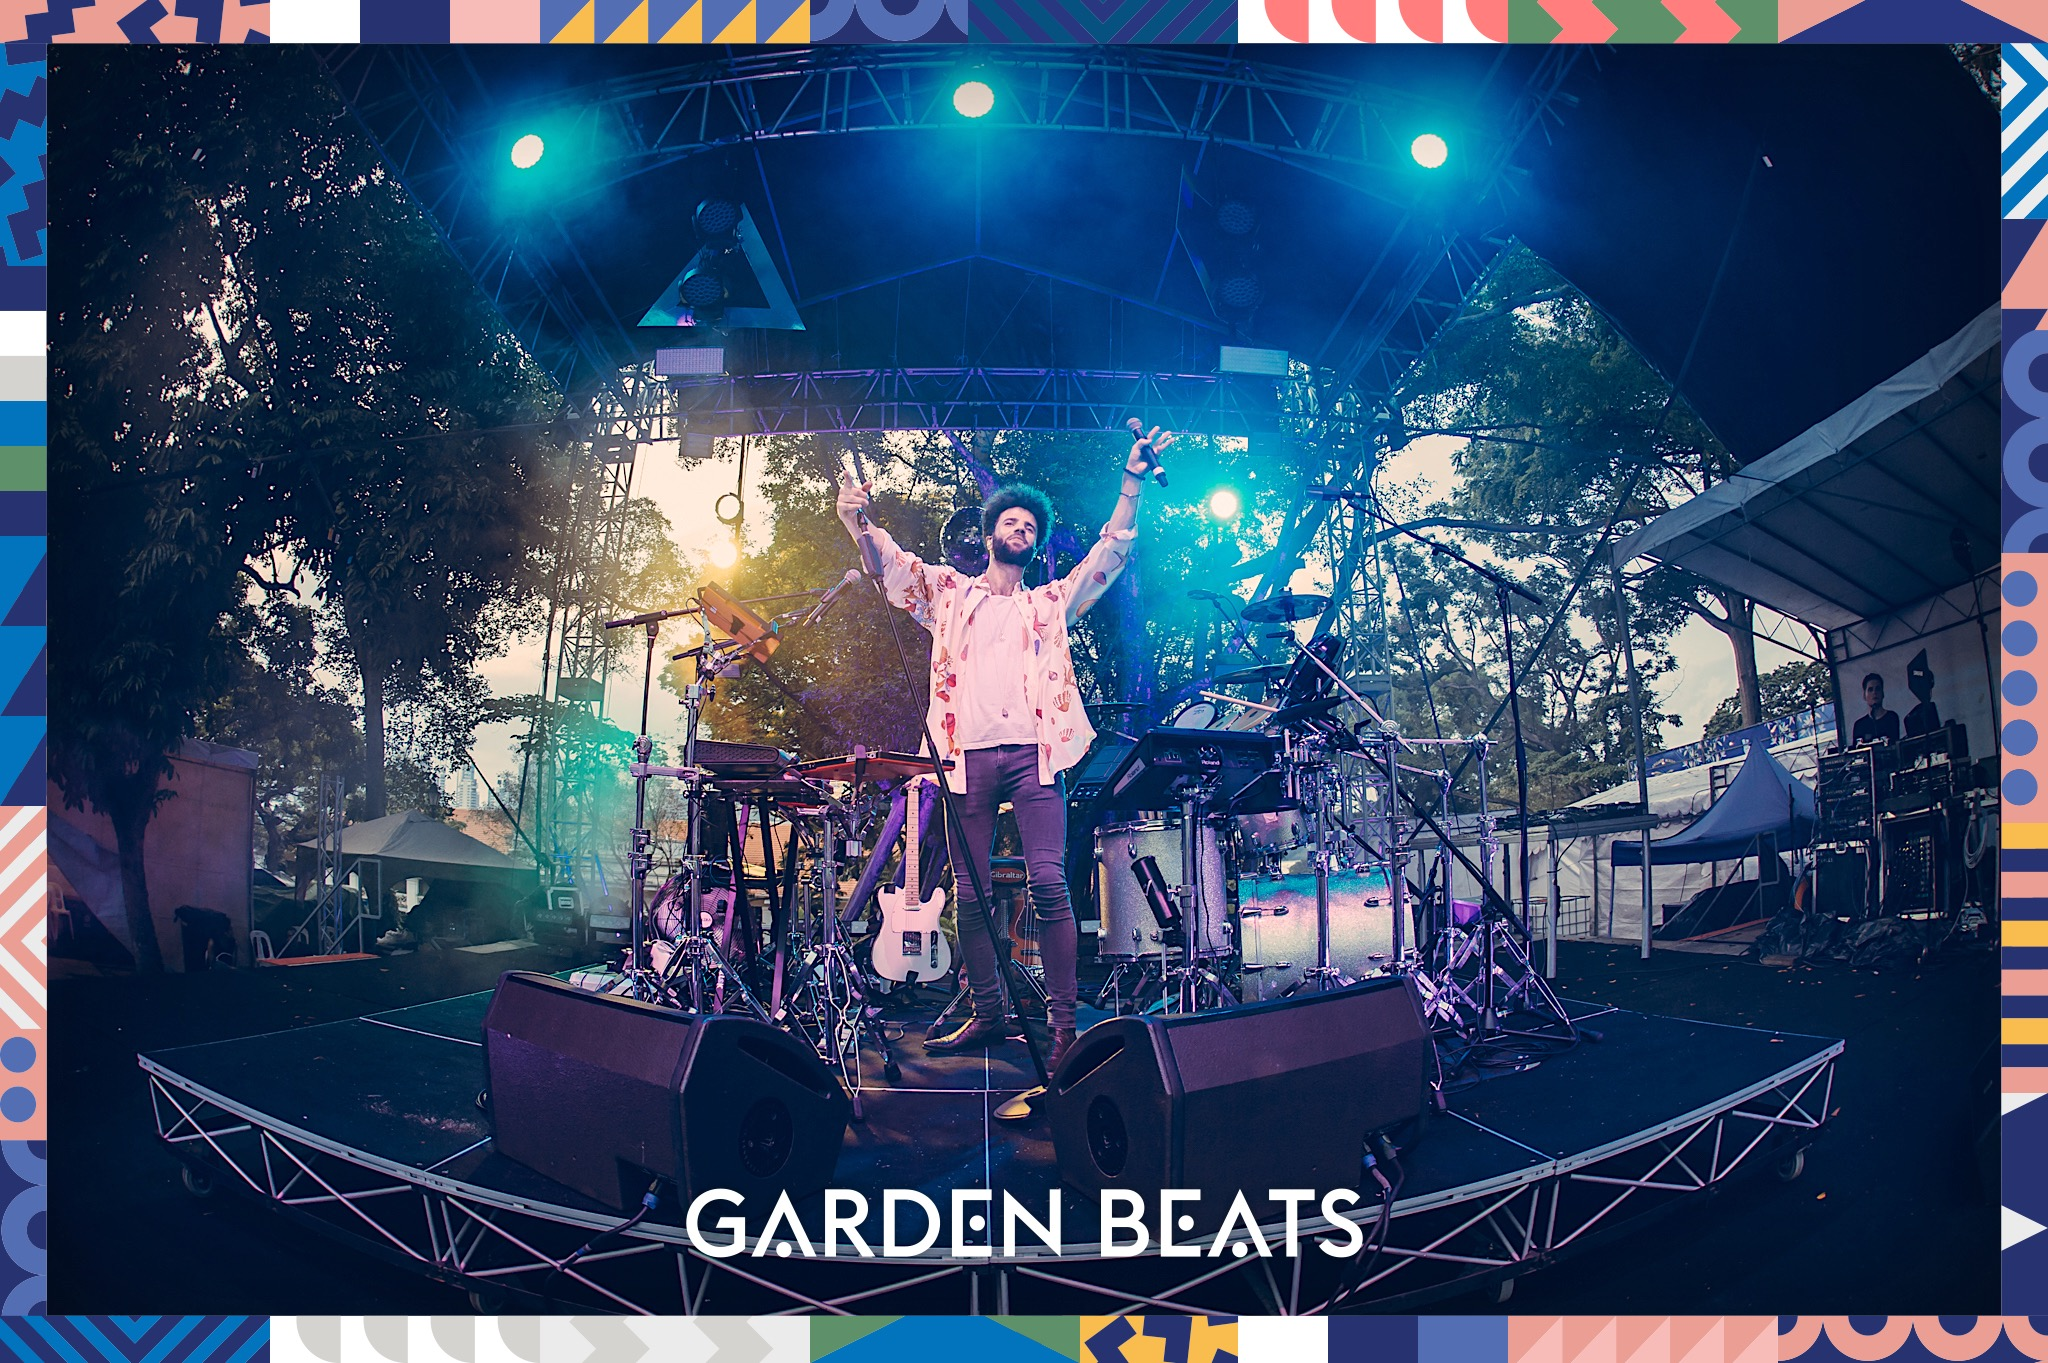 03032018_GardenBeats_Colossal713_Watermarked.jpg